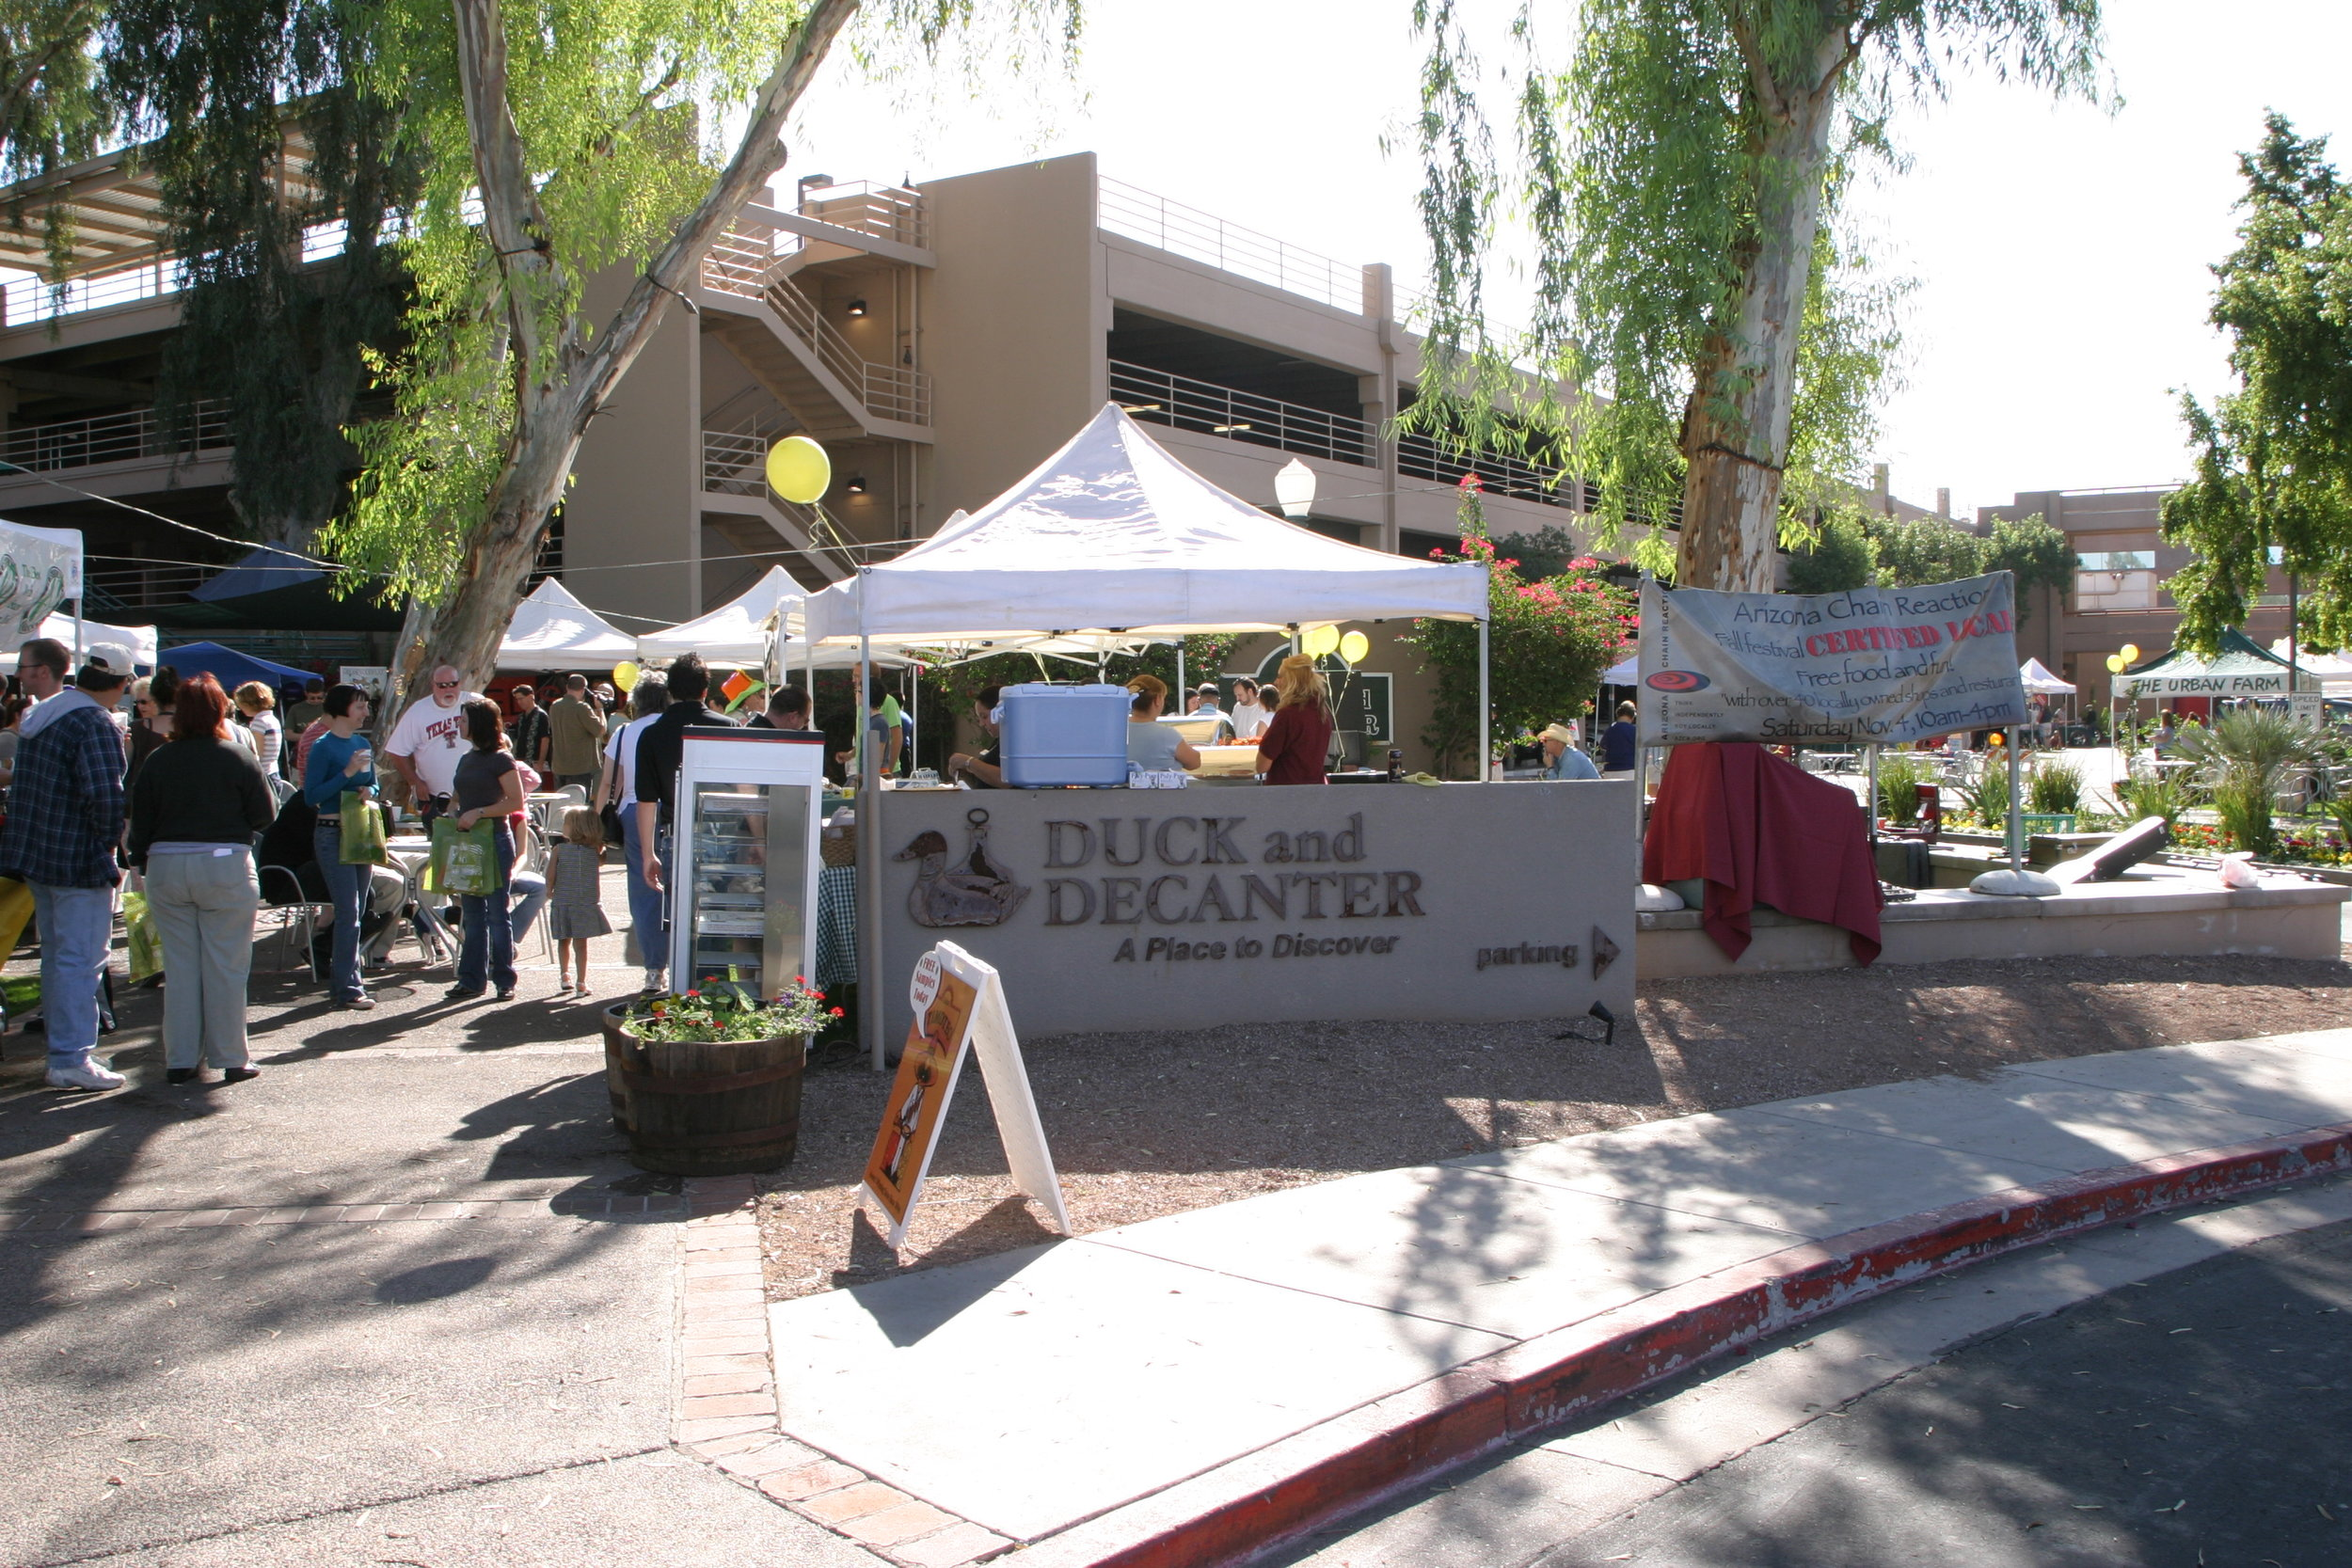 2005: First Certified Local Fall Festival held at the Duck and Decanter in Phoenix.